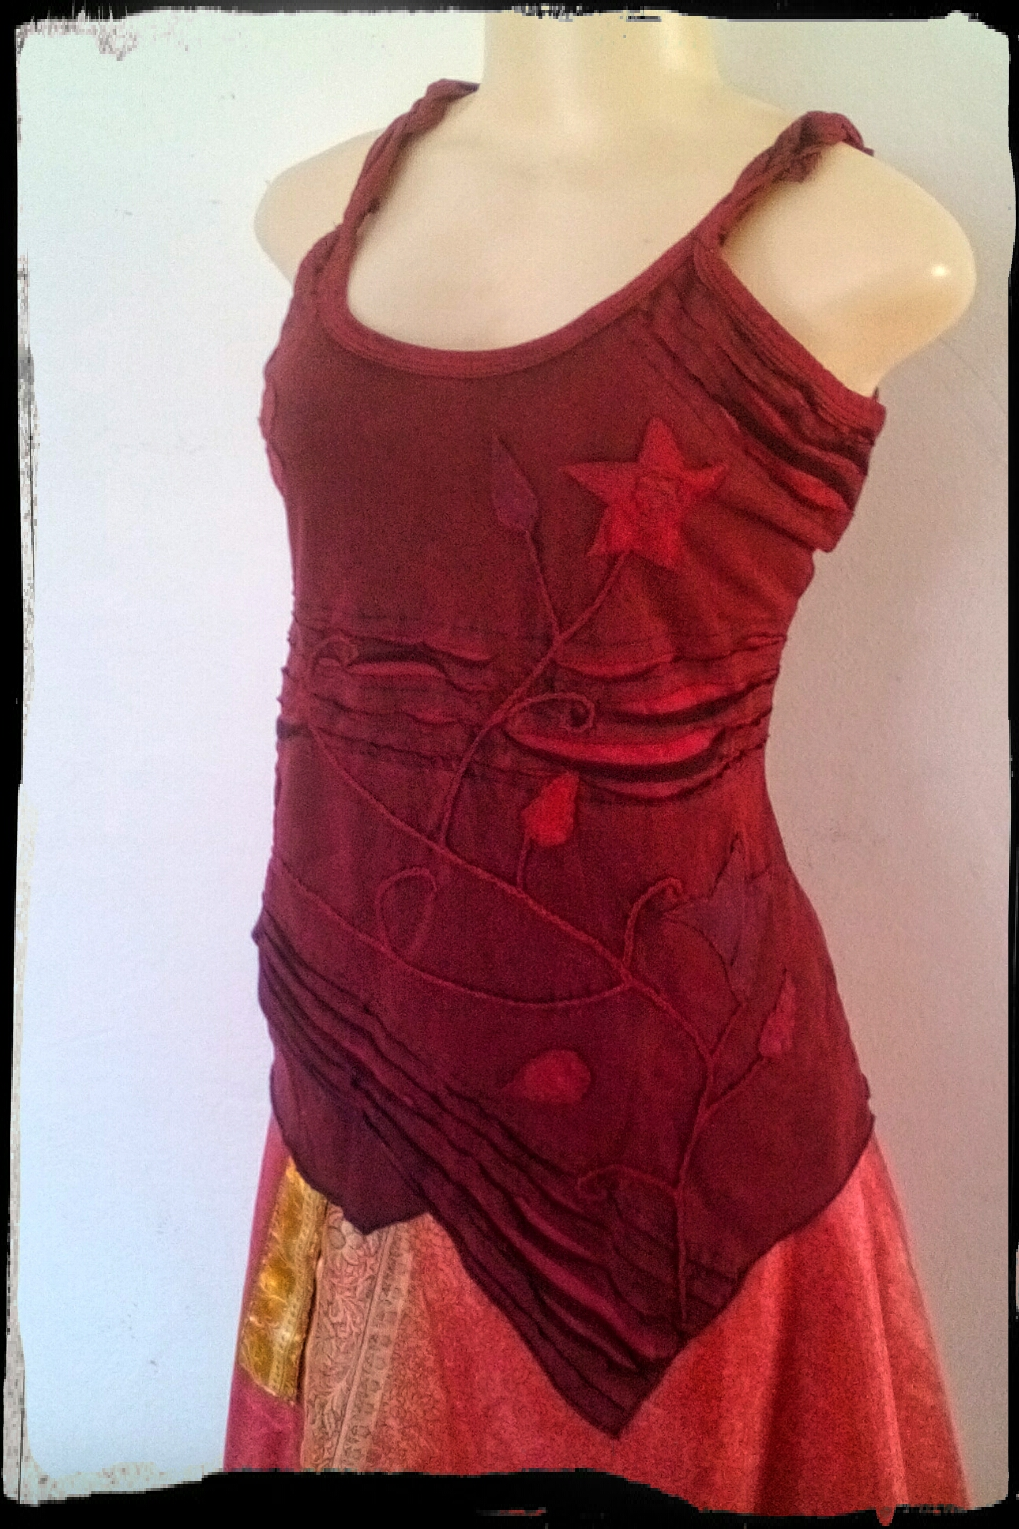 Plaited Strap,Romantic summer top, Green Red or Purple, medium to XXL Big style top, T shirt fabric slightly stretchy